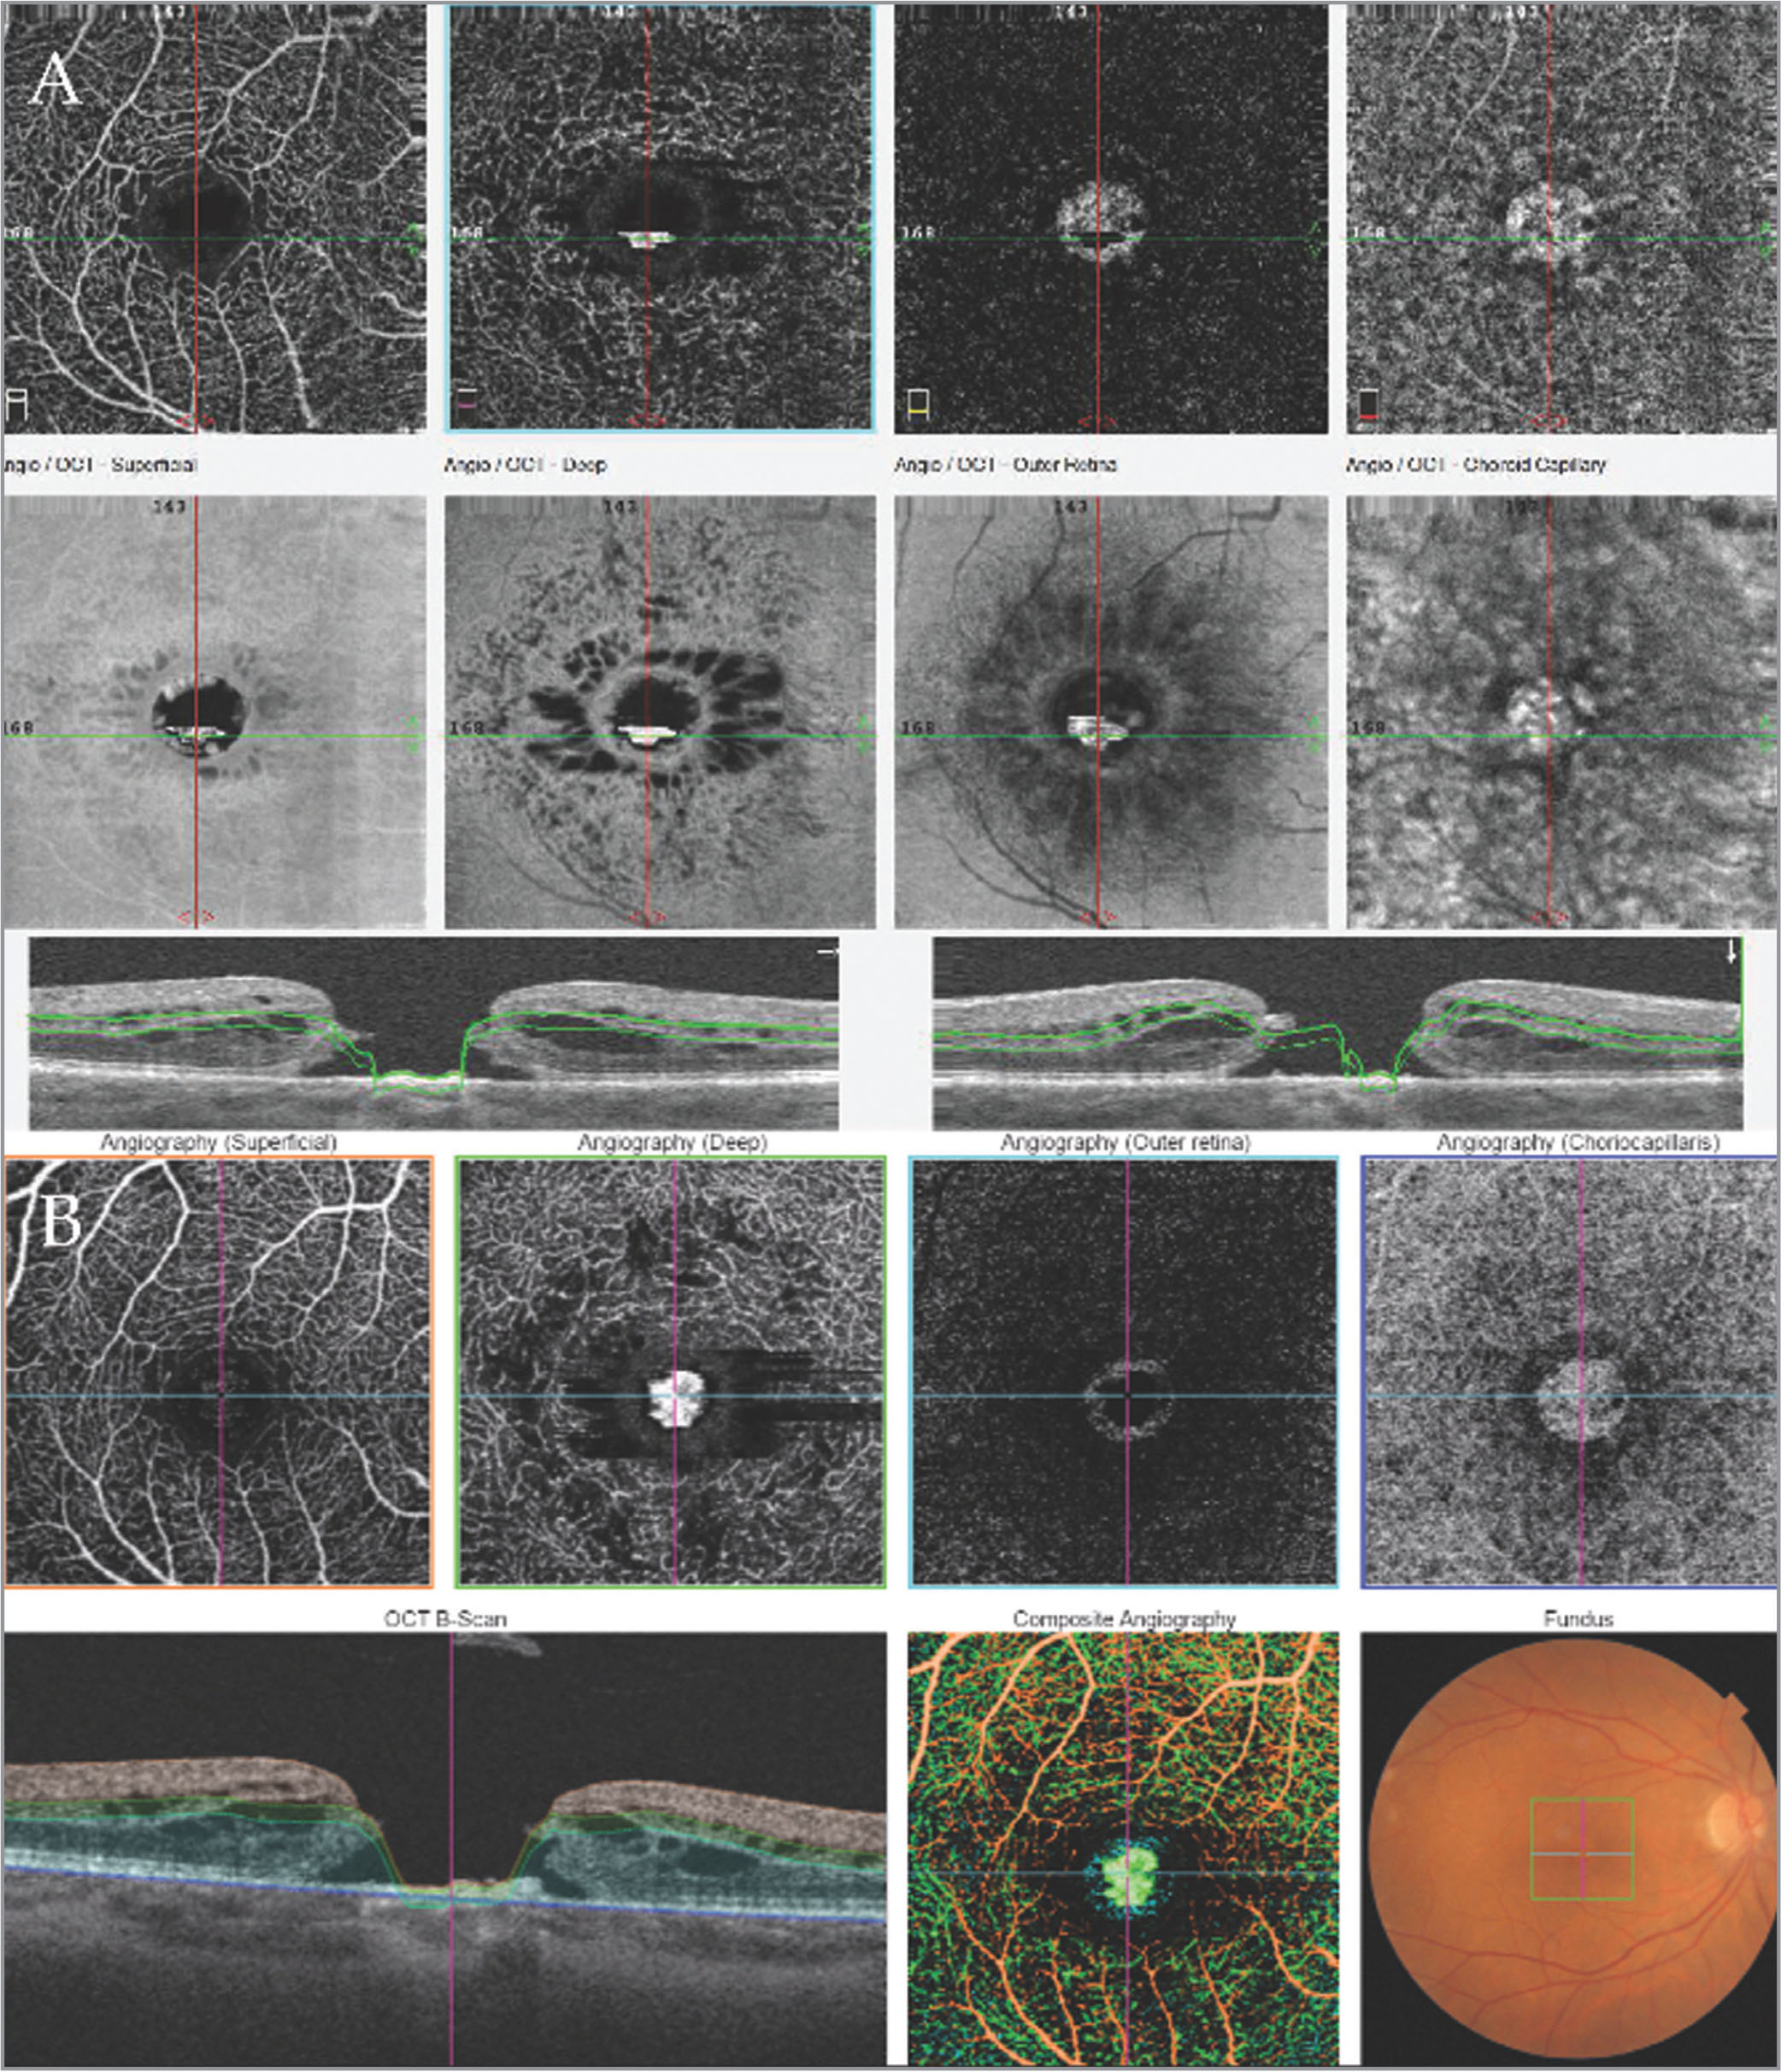 Comparison of two different optical coherence tomography (OCT) techniques of the same eye on the same day. (A) Spectral-domain OCT angiography (OCTA) (RTVue). (B) Swept-source OCTA (Triton).